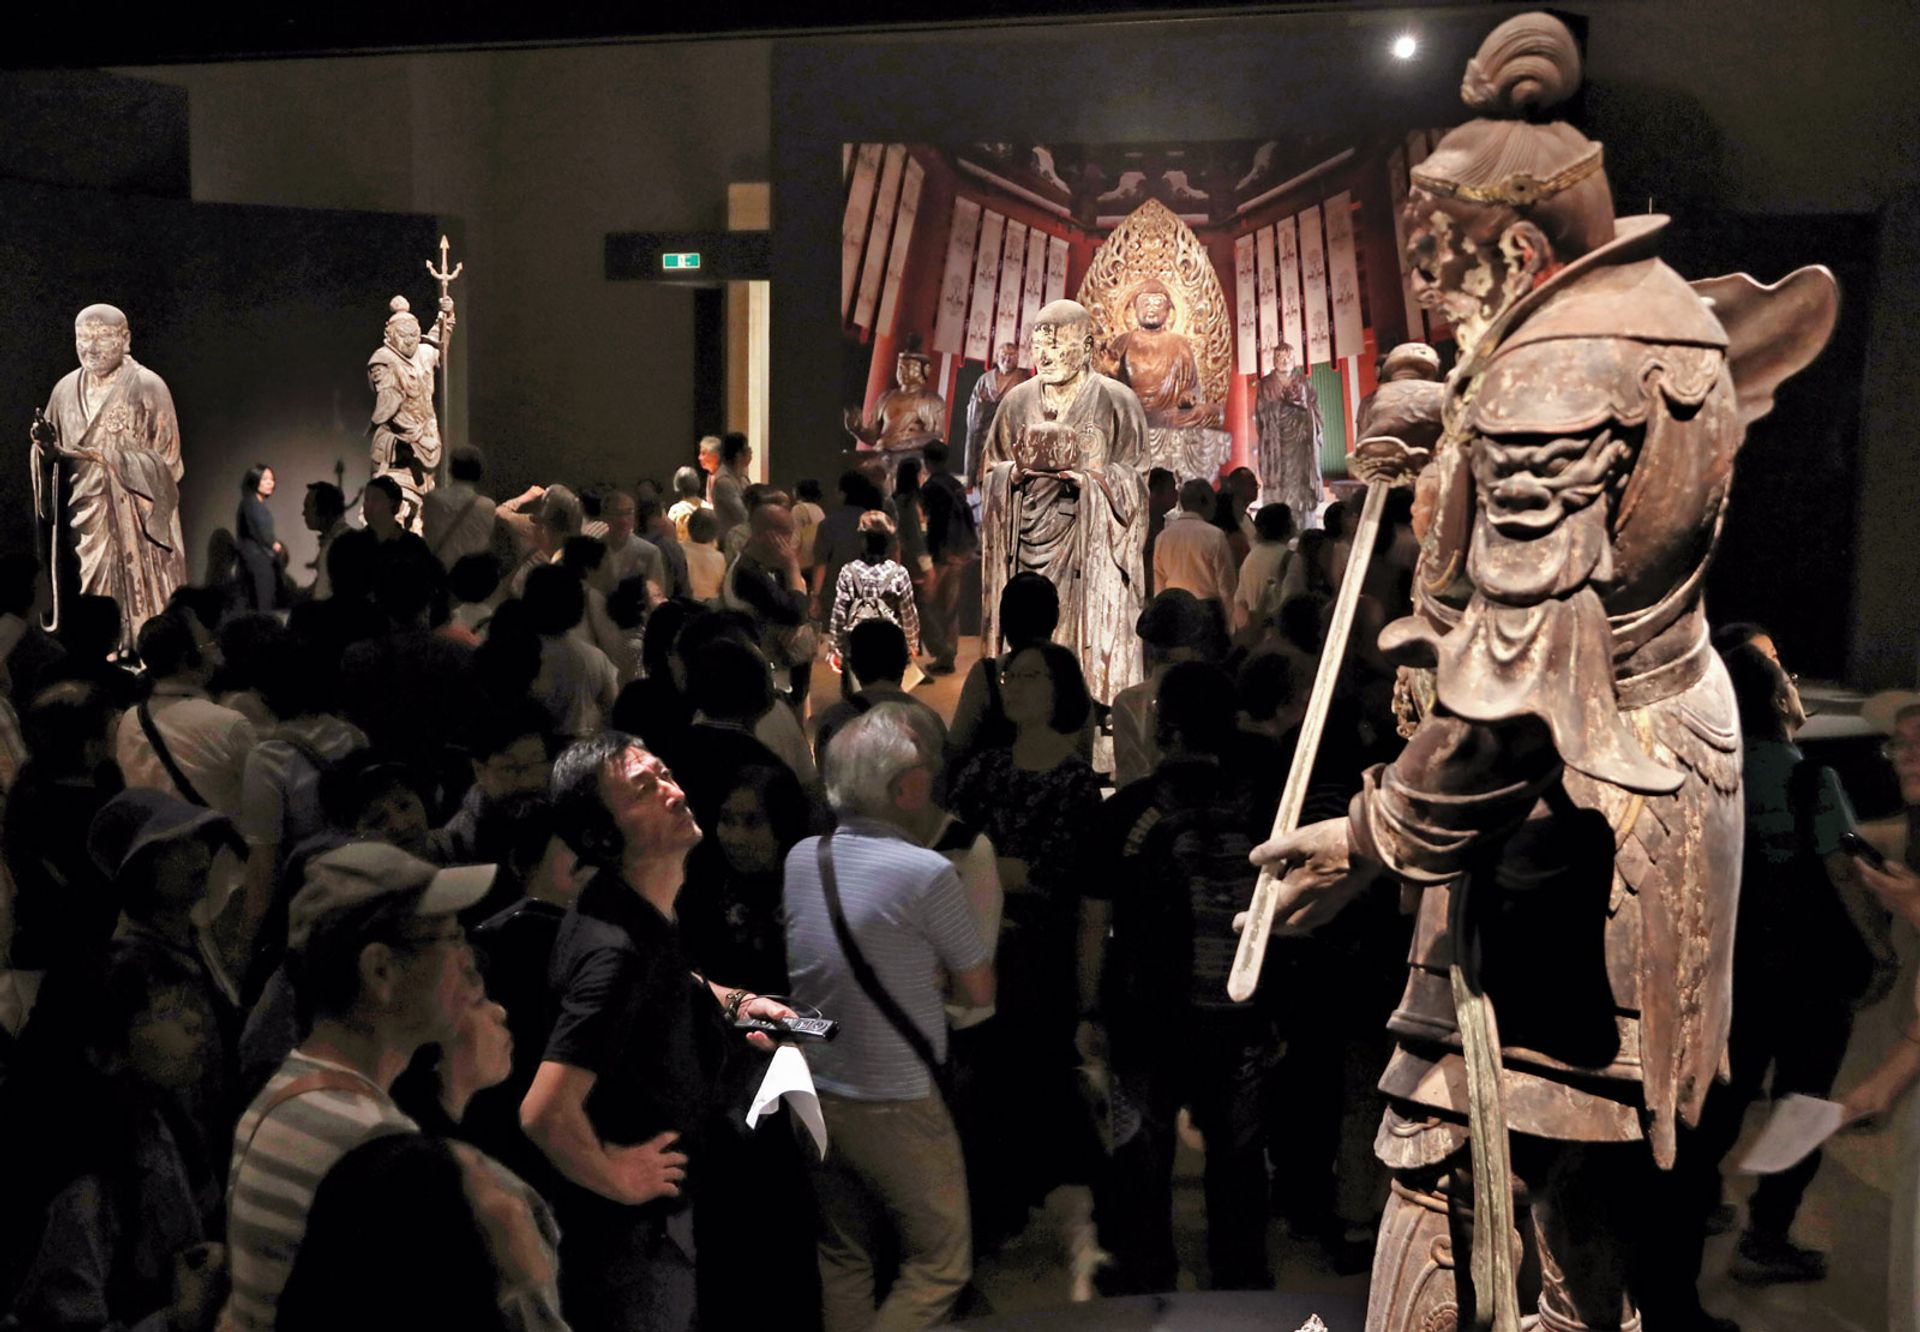 Works by Unkei, the master of Buddhist sculpture, on show at the Tokyo National Museum. Asahi Shimbun via Getty Images